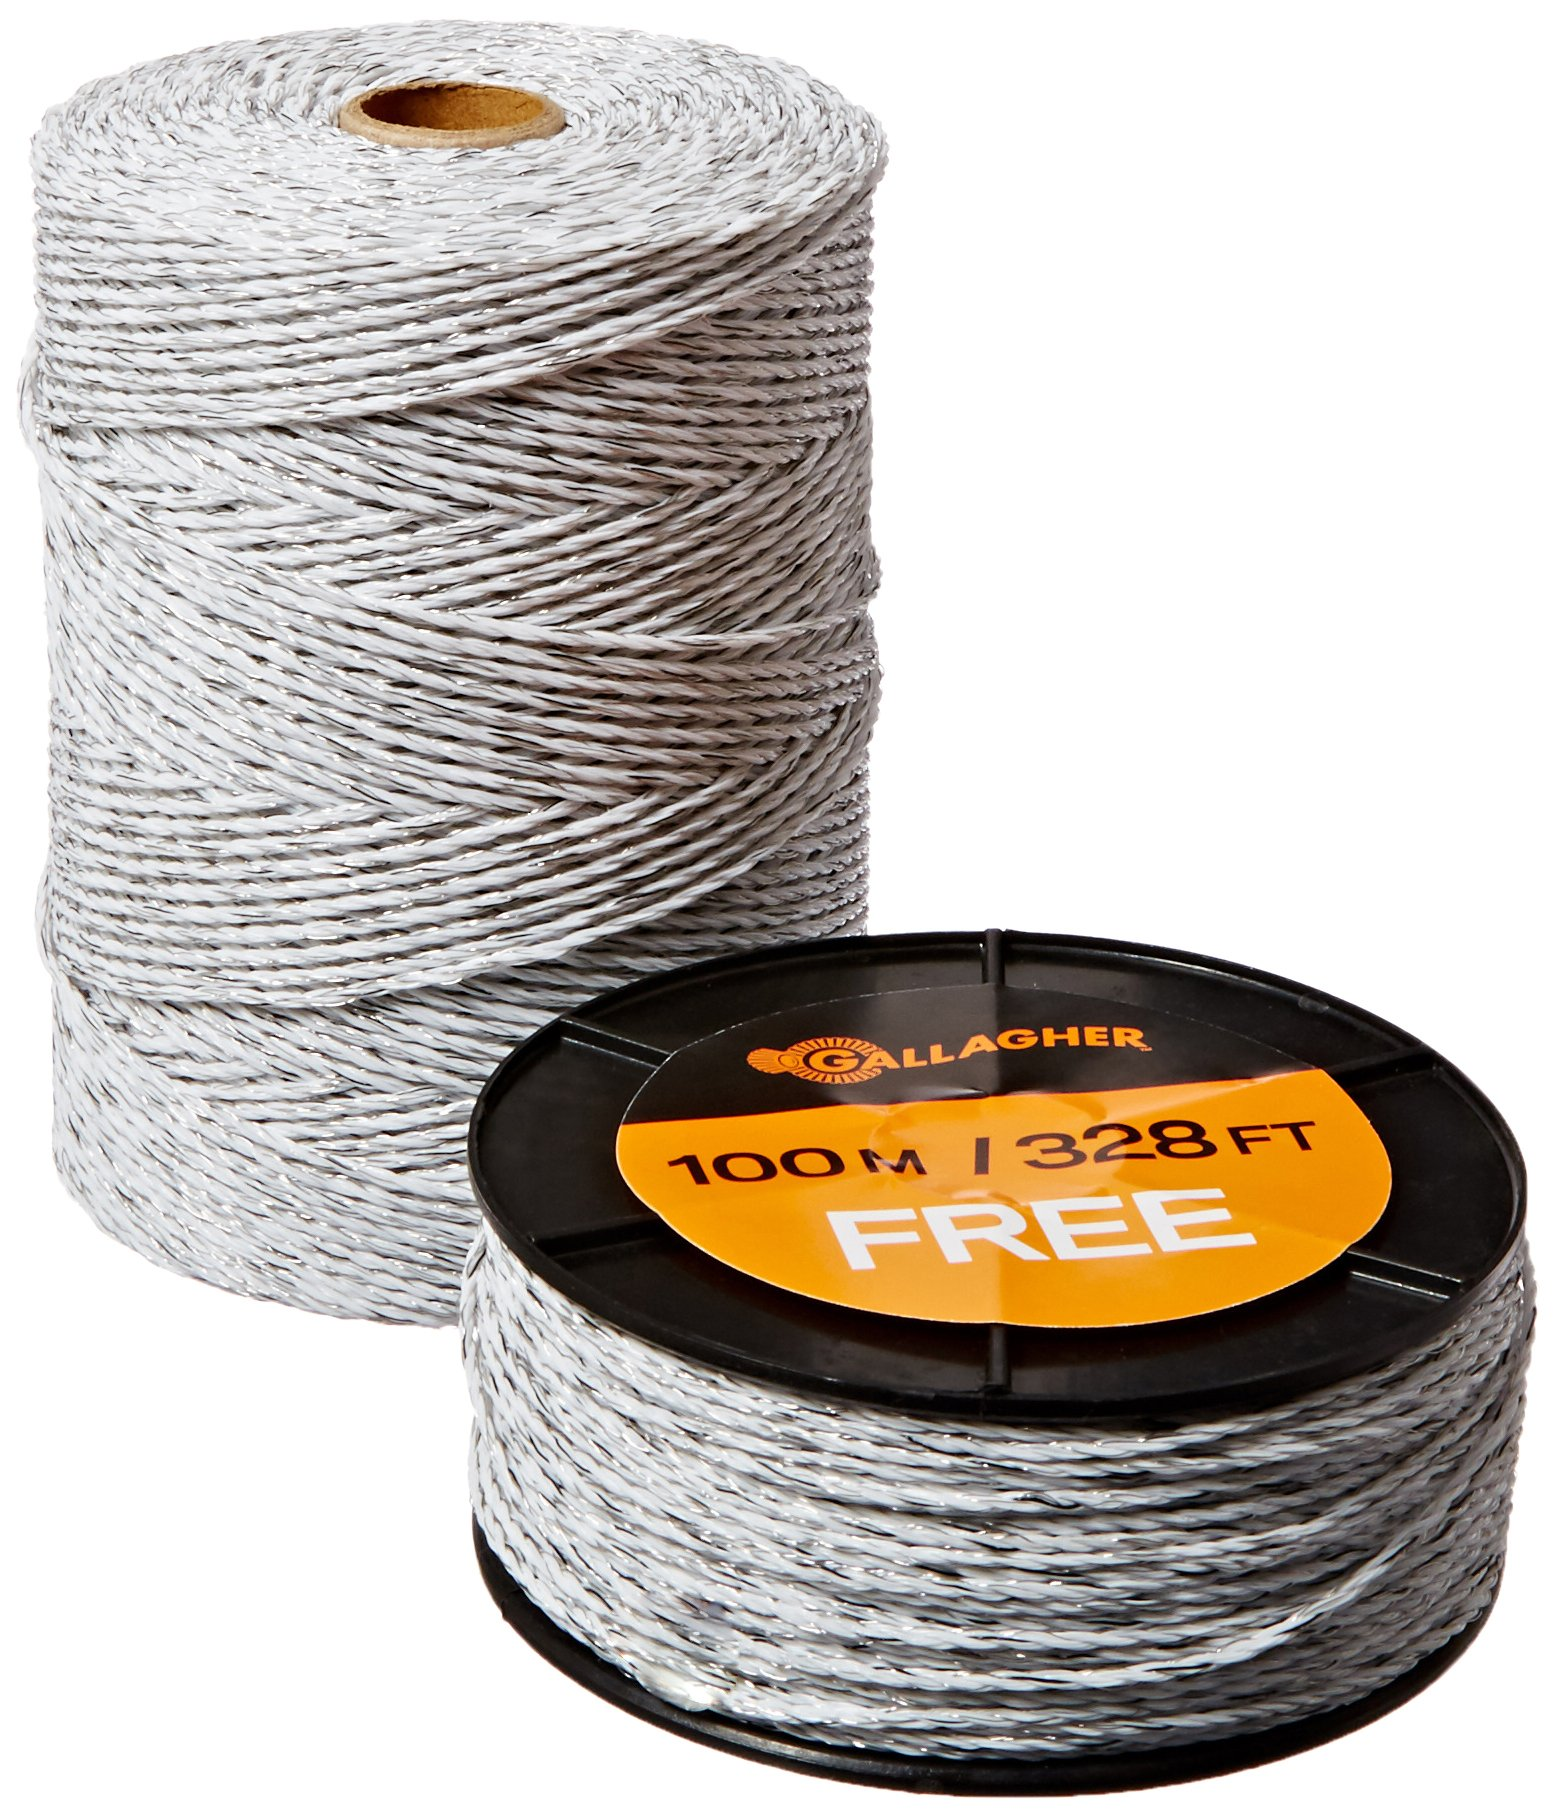 Gallagher G620300 Electric Polywire Fence Combo Roll, 1312-Feet (+ 328' FREE) WHITE